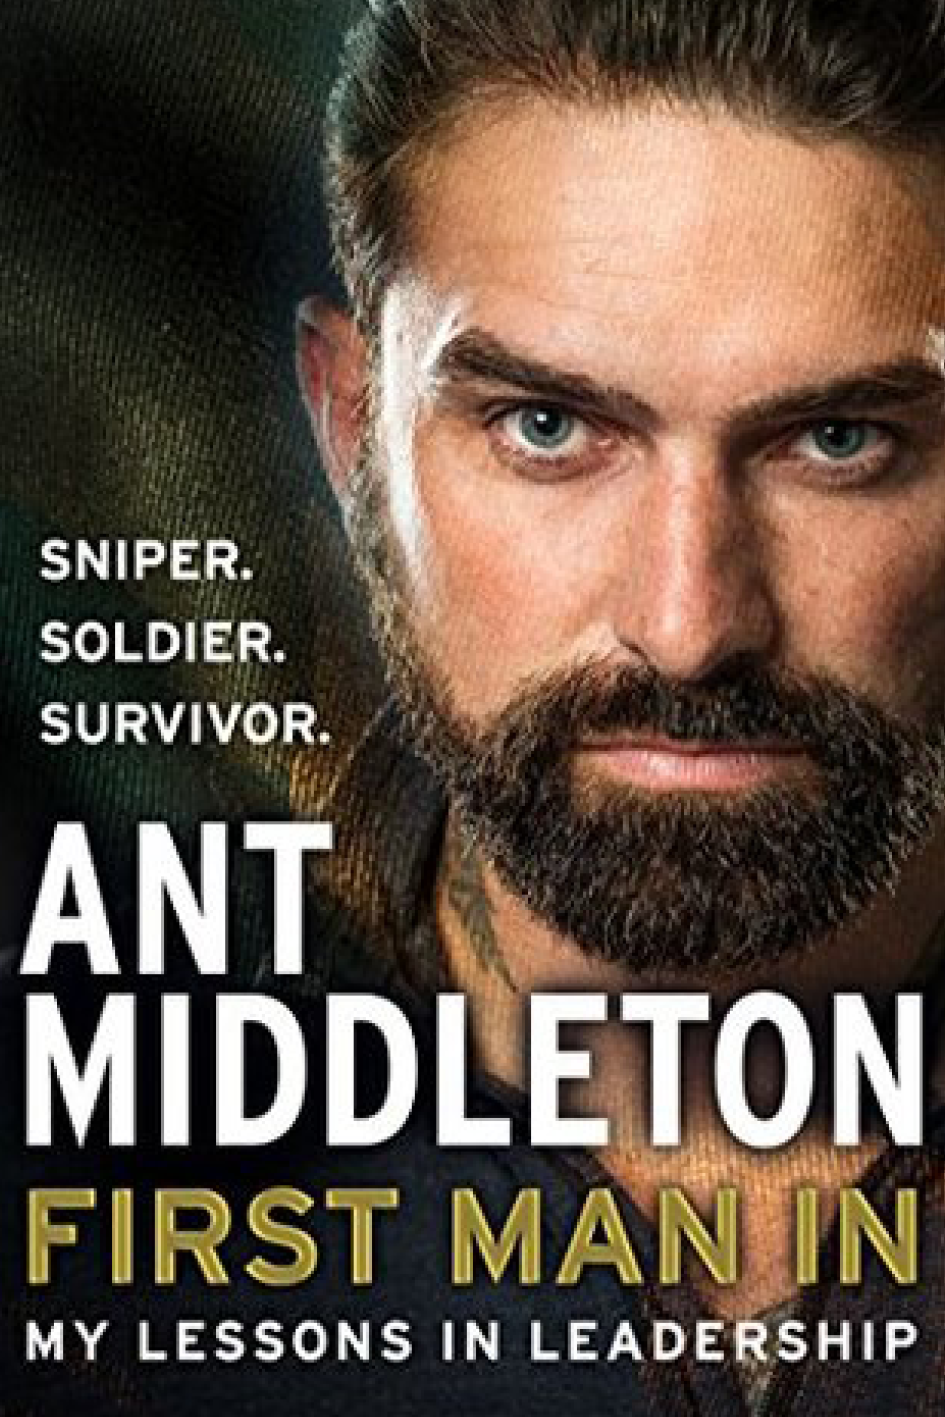 "First Man in: Leading from the Front   ,   Ant Middleton   "" It tells the story of Ant Middleton's' life through the high and the lows from military life, prison to passing special forces training. How he has learnt the meaning of true leadership. To push yourself physically and mentally. Dealing with difficult situations. At the end of each chapter he writes valuable lessons that we all can learn from. It is very interesting book with mental ability and strength on how to deal with situations. ""   Suzie Palmer,  Finance & Administrative Support"